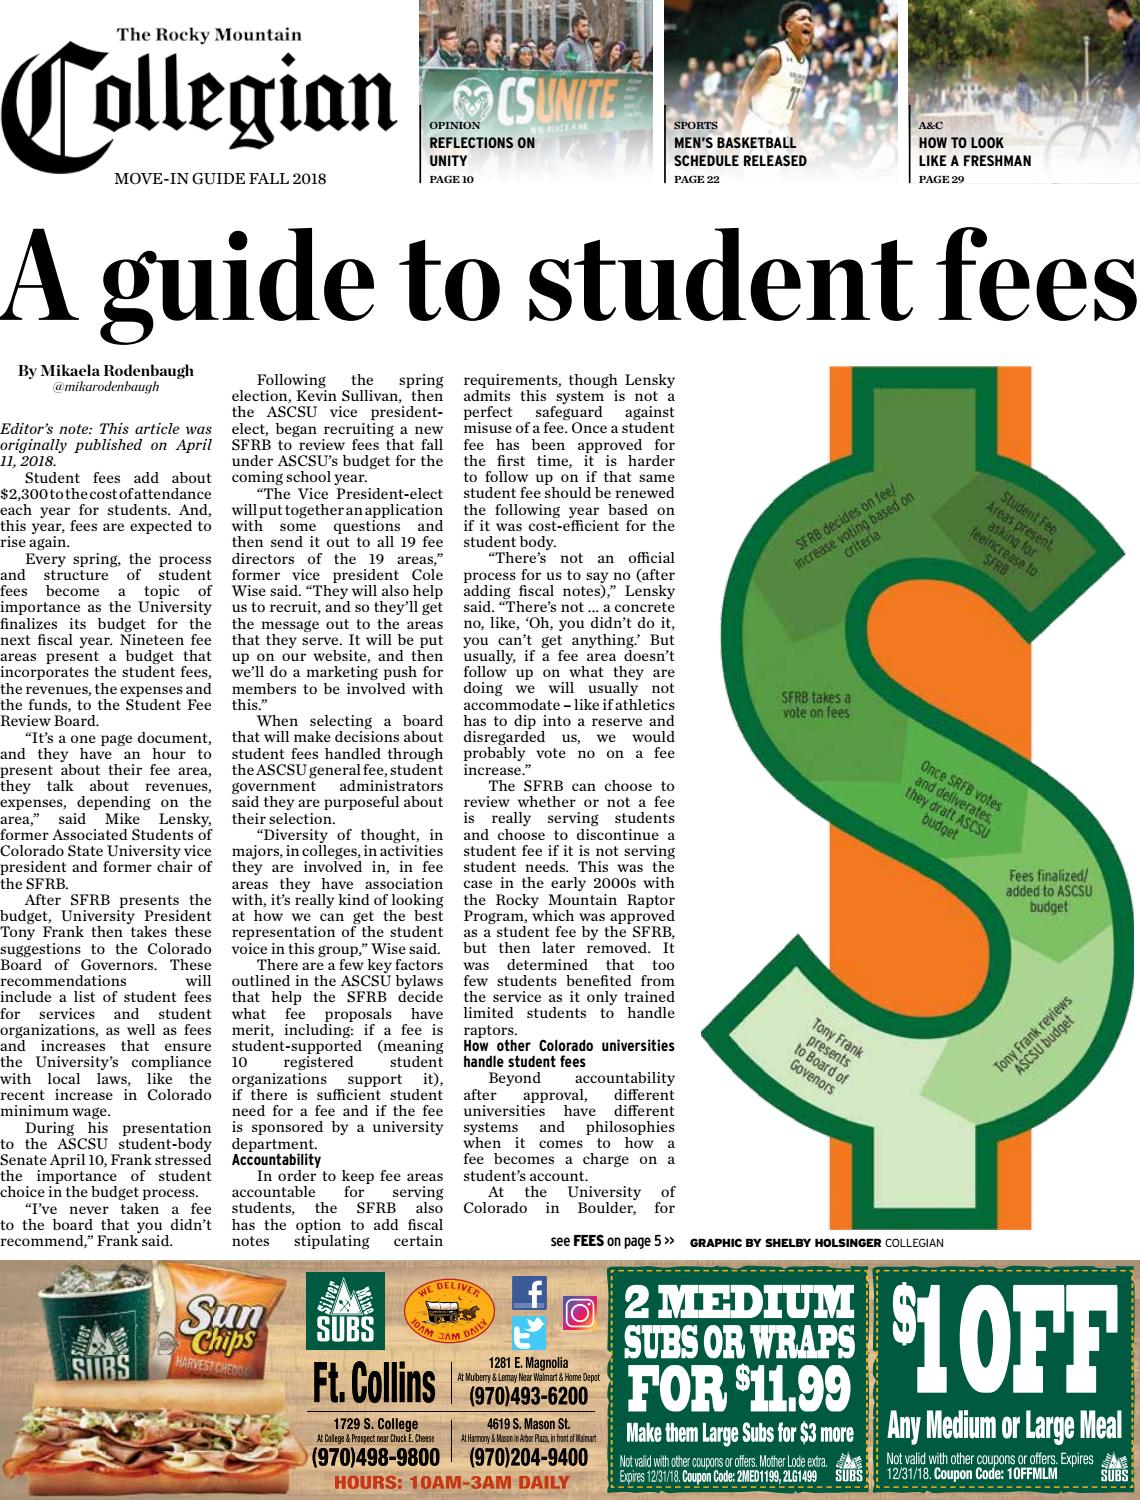 fall 2018 move in edition by rocky mountain collegian issuu rh issuu com